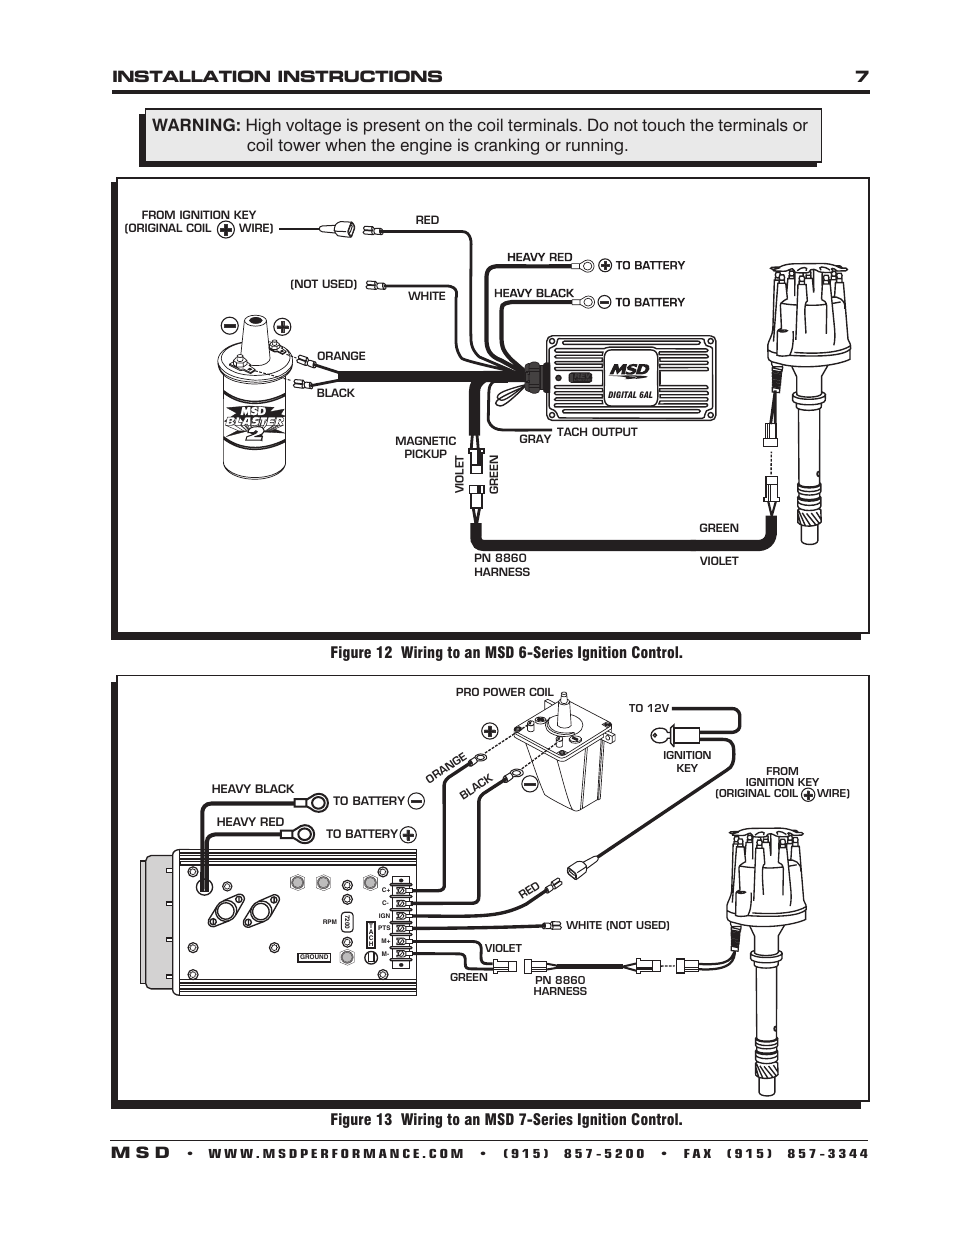 hight resolution of installation instructions 7 m s d msd 85501 chevy v8 pro billet distributor installation user manual page 7 8